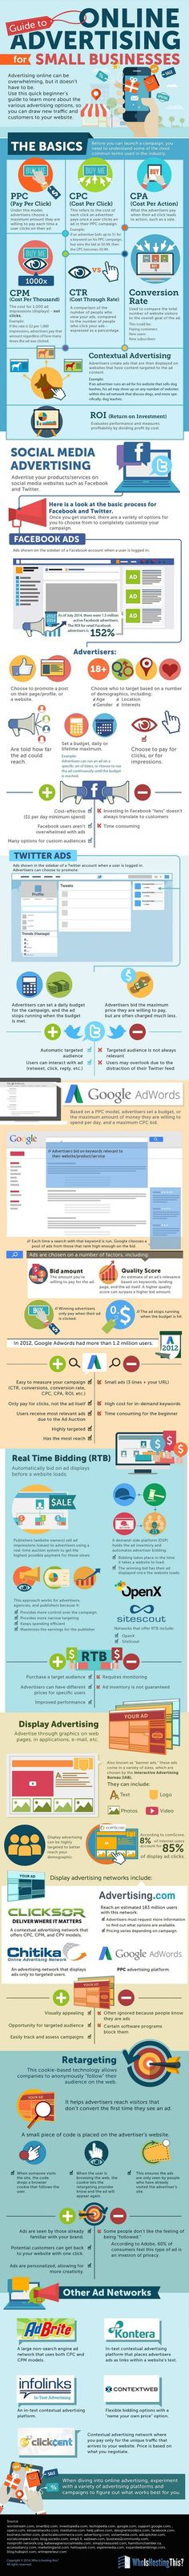 awesome Guide To Online Advertising For Small Businesses - #infographic